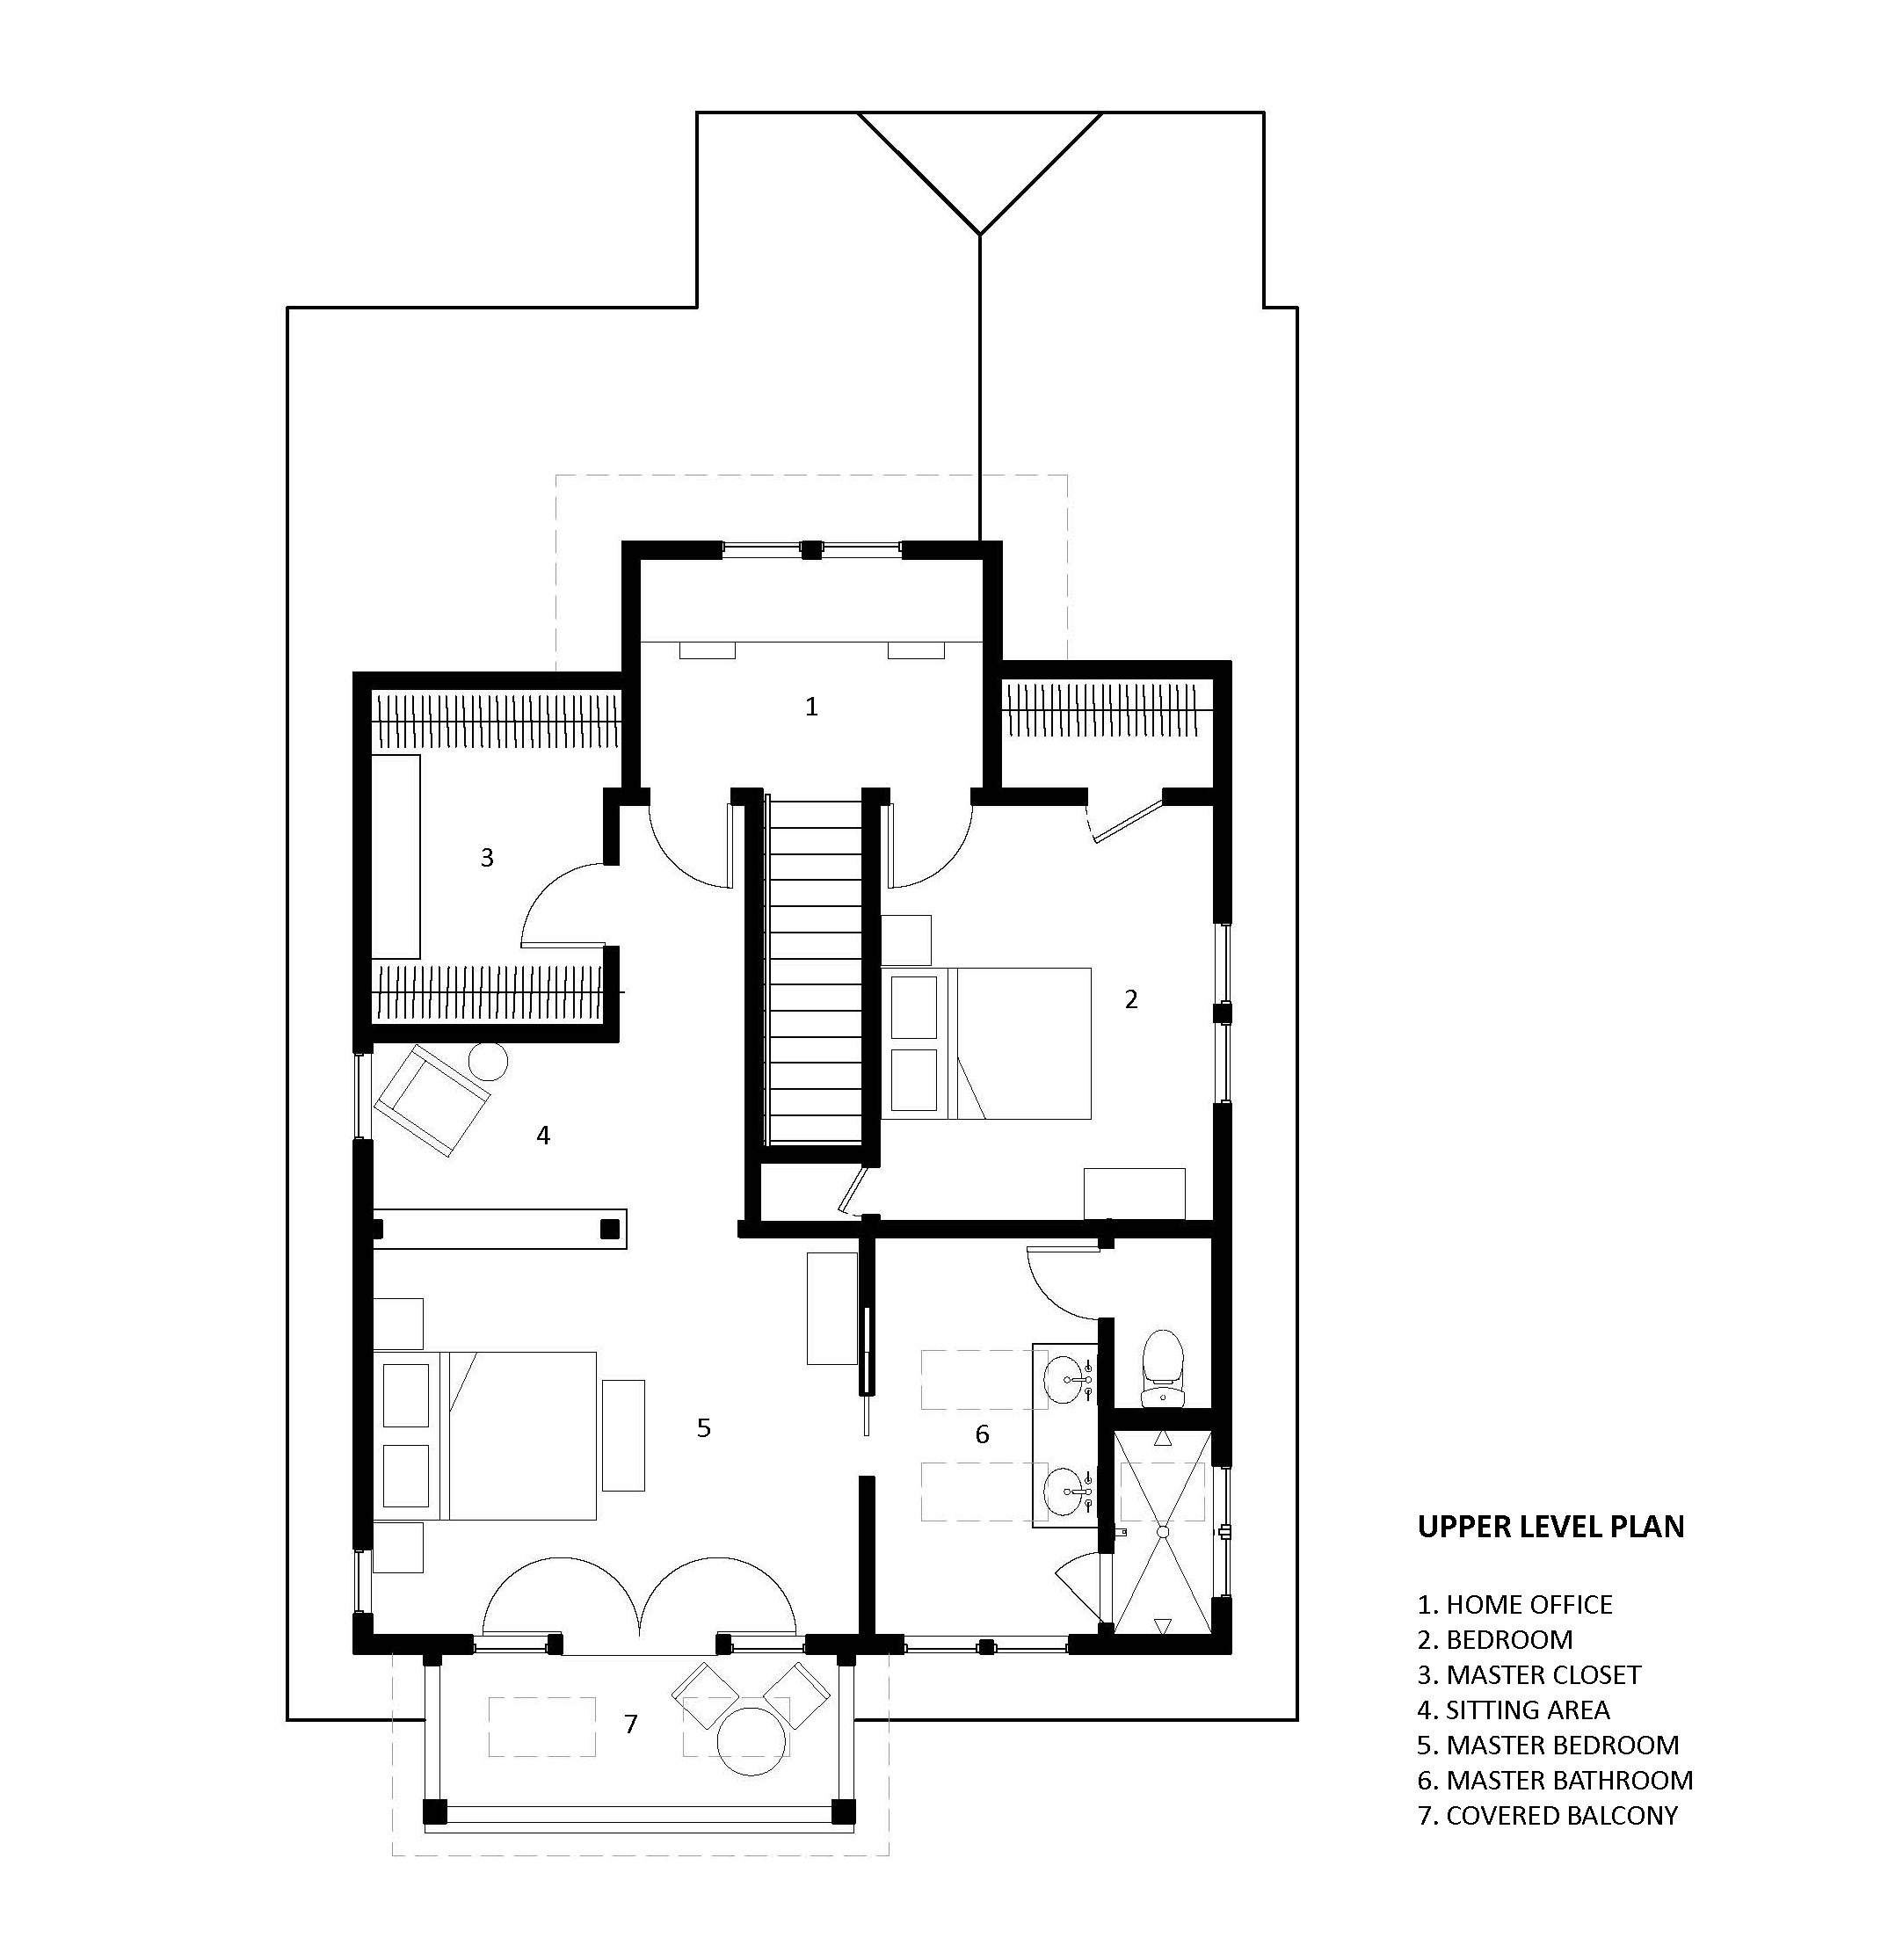 upper level plan with text.jpg